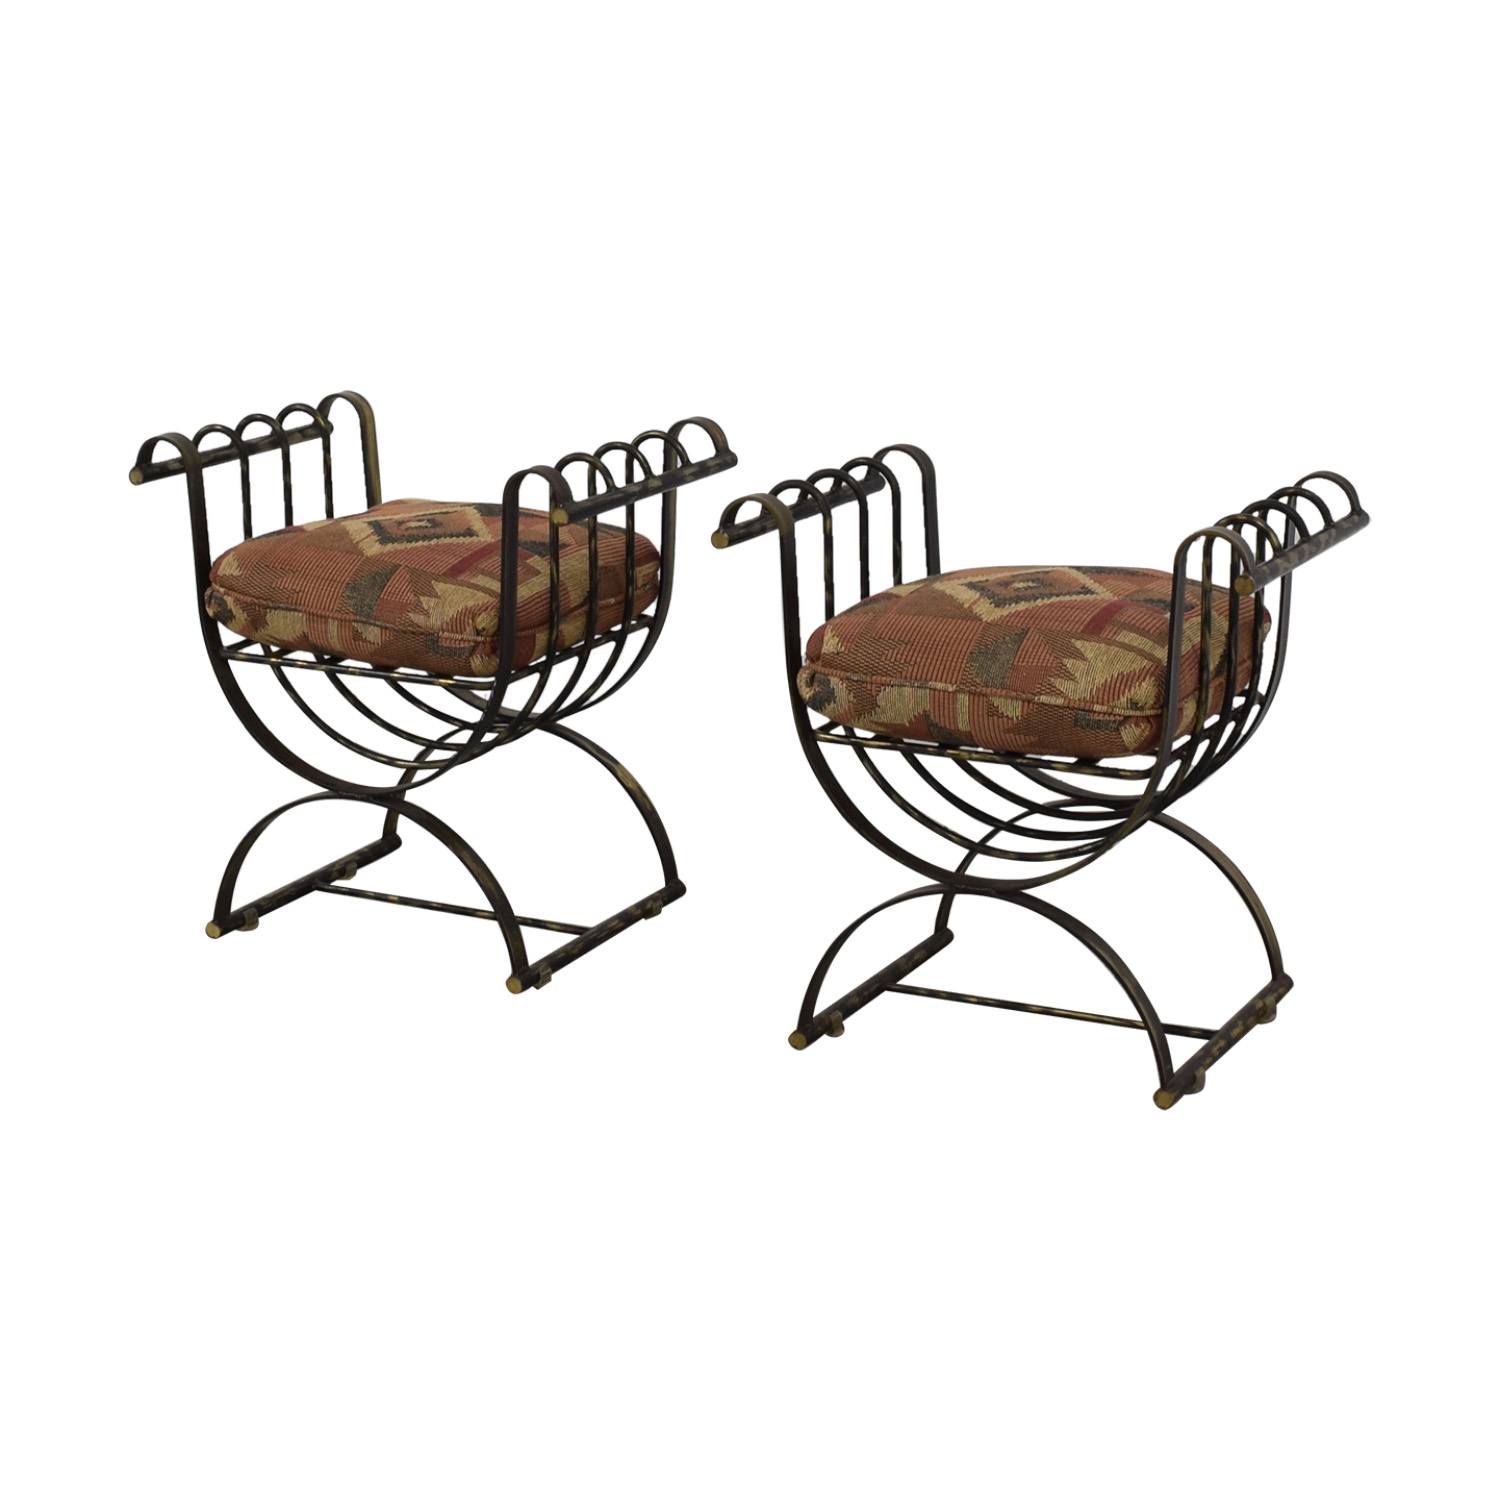 Wrought Iron Decorative Seats multi color